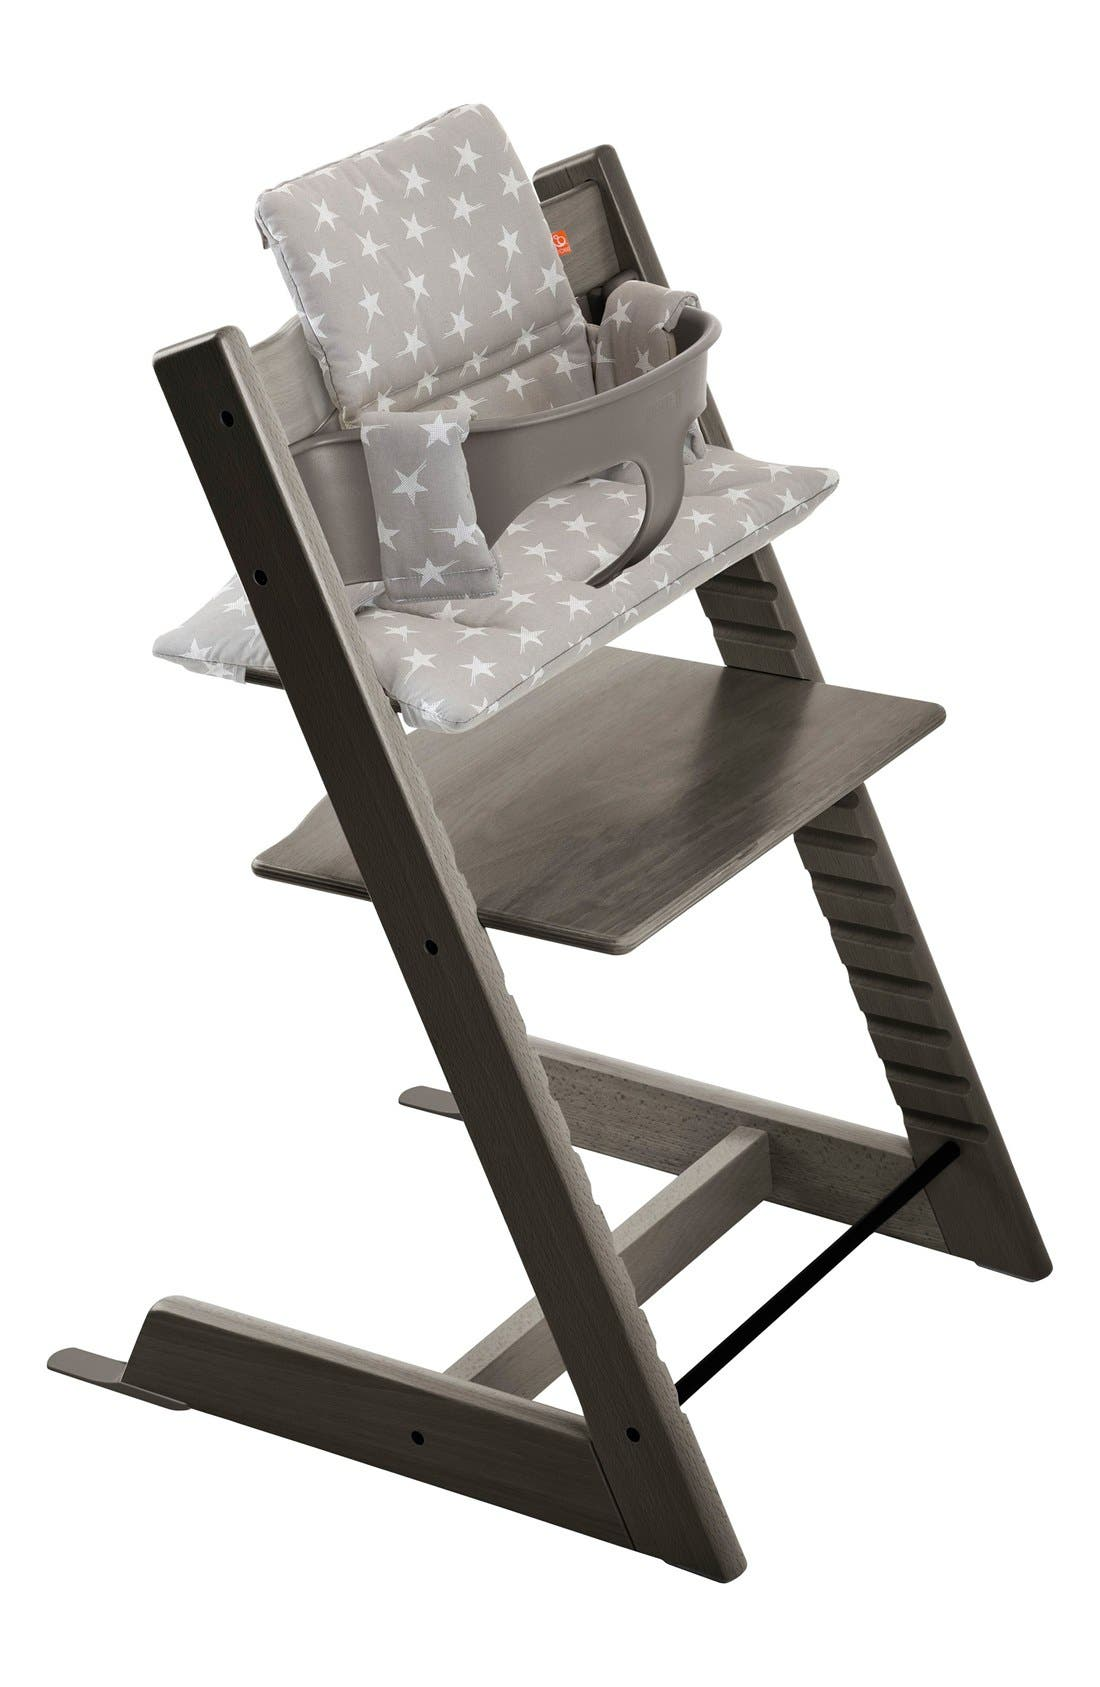 Stokke U0027Tripp Trapp®u0027 Chair, Baby Set, Cushion U0026 Tray Set (Nordstrom  Exclusive)